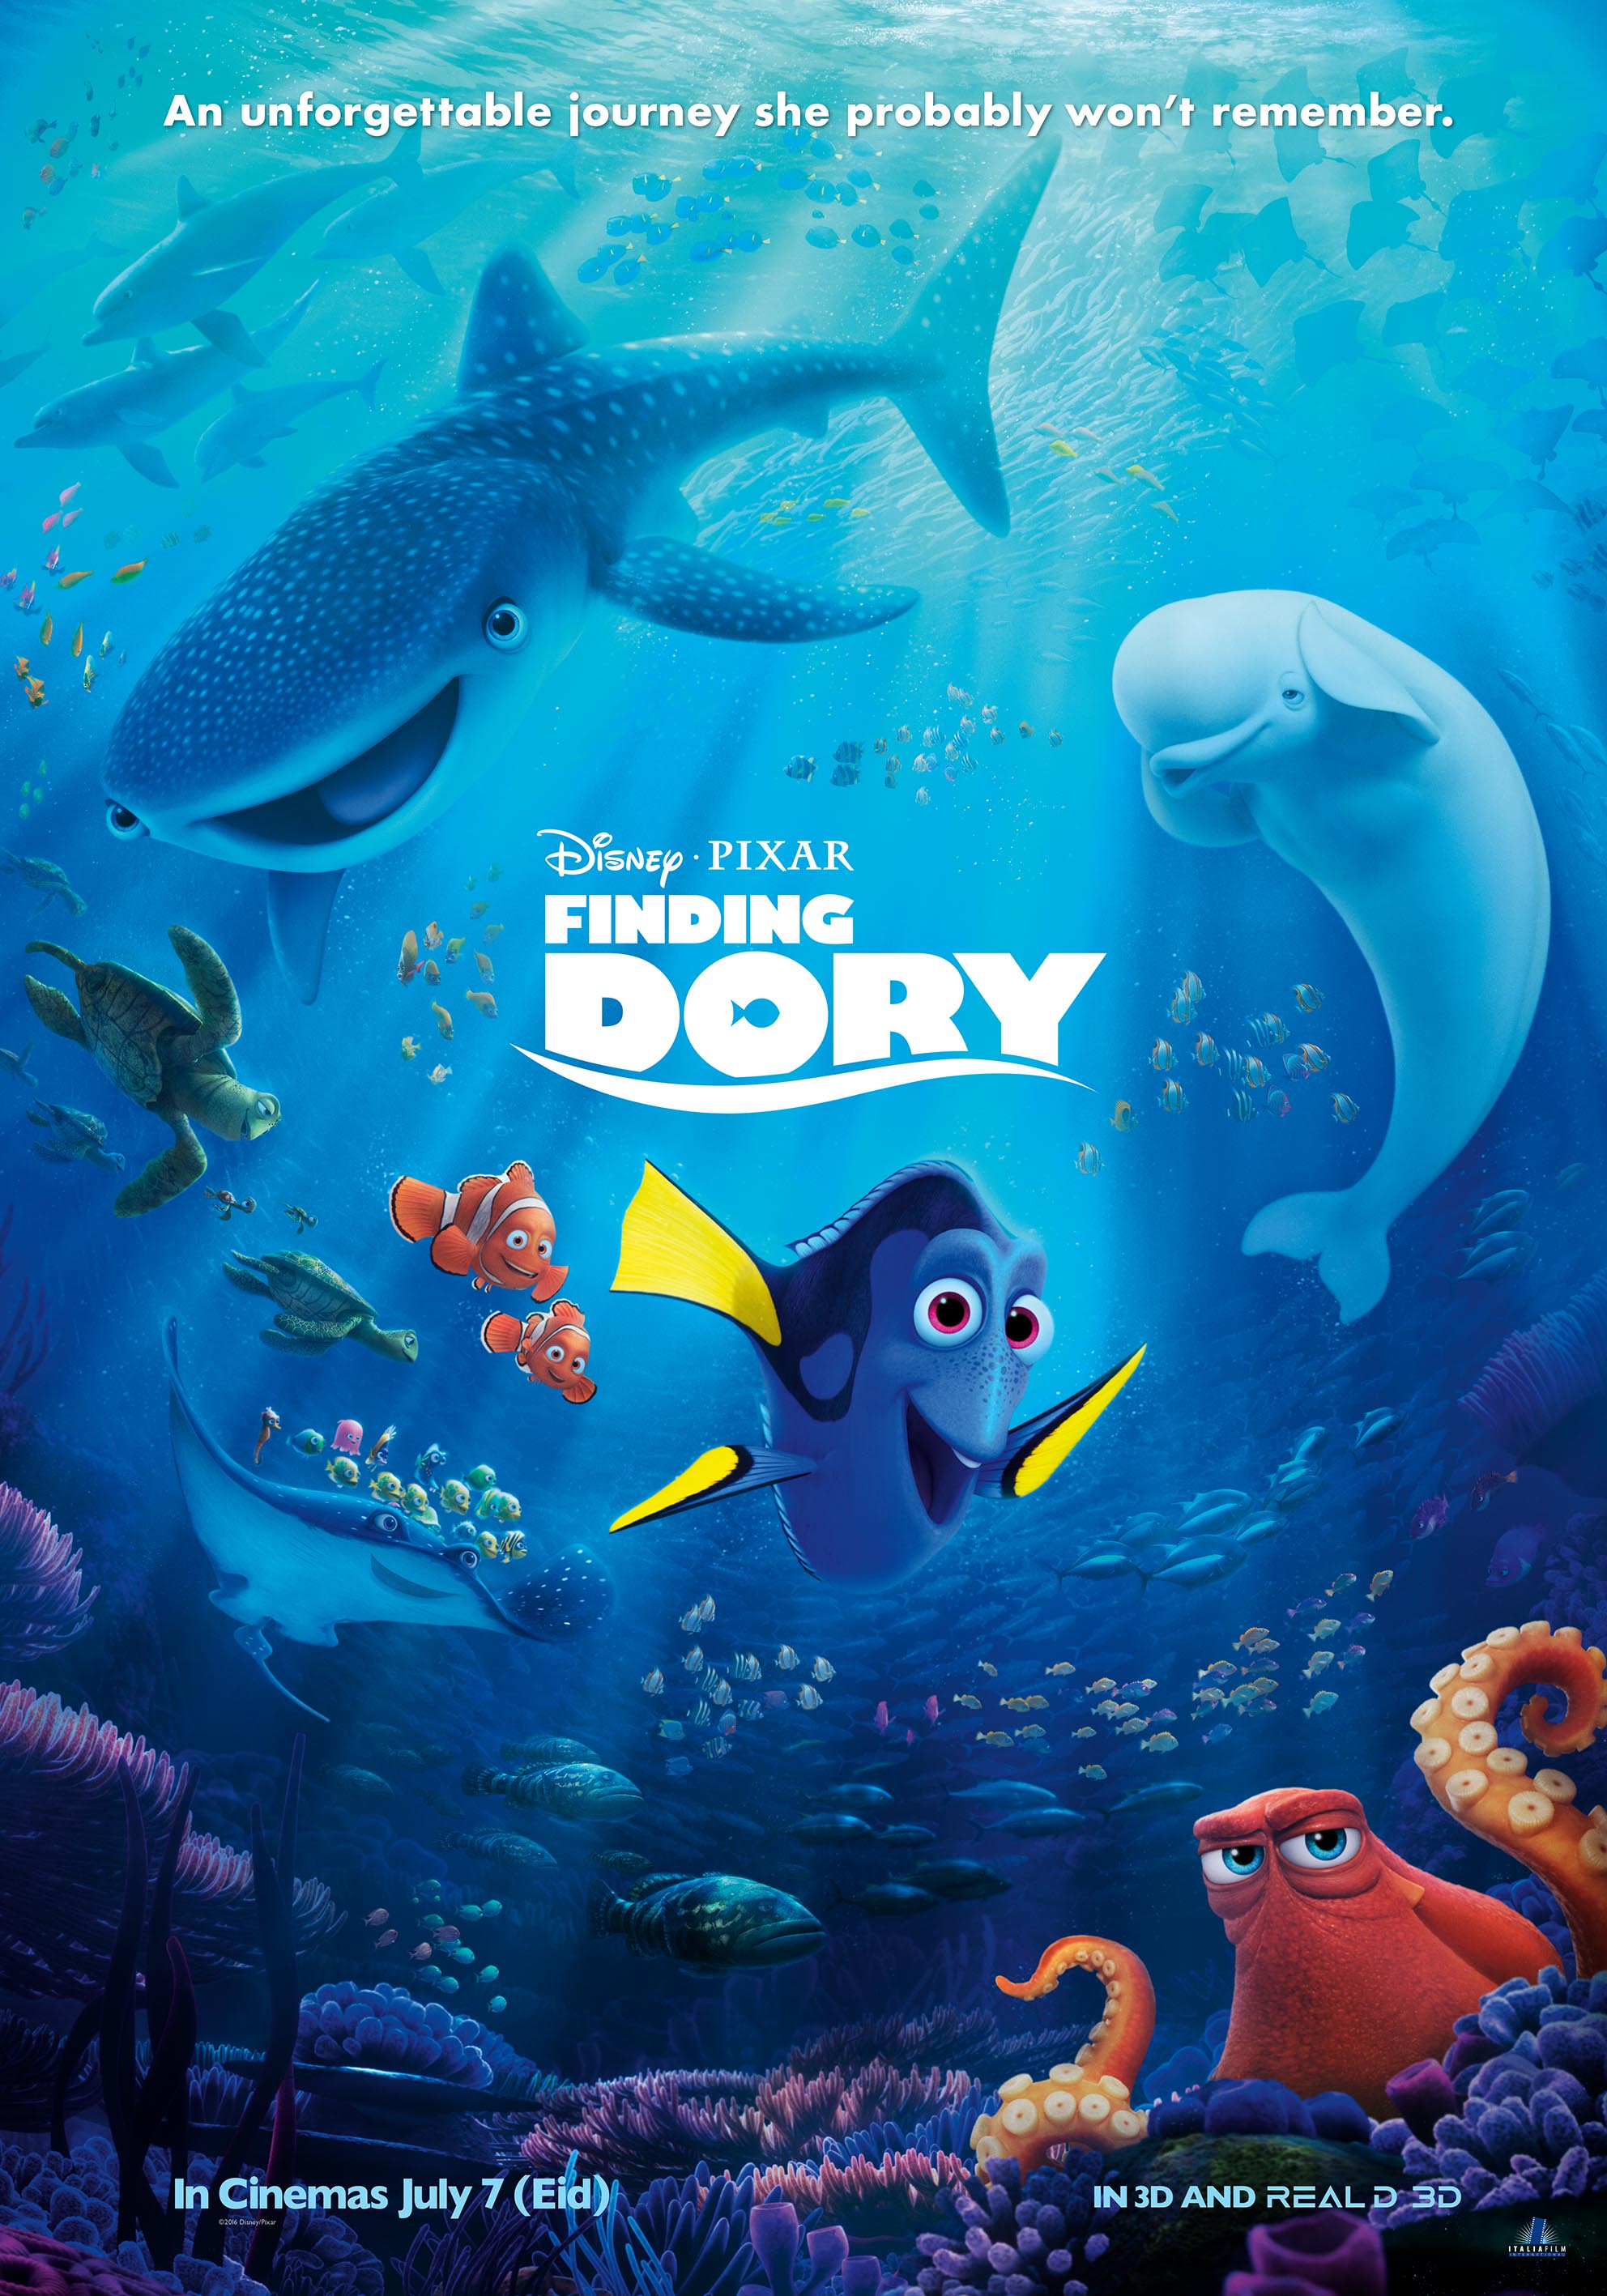 Finding Dory A Surprising Find Merlins Musings